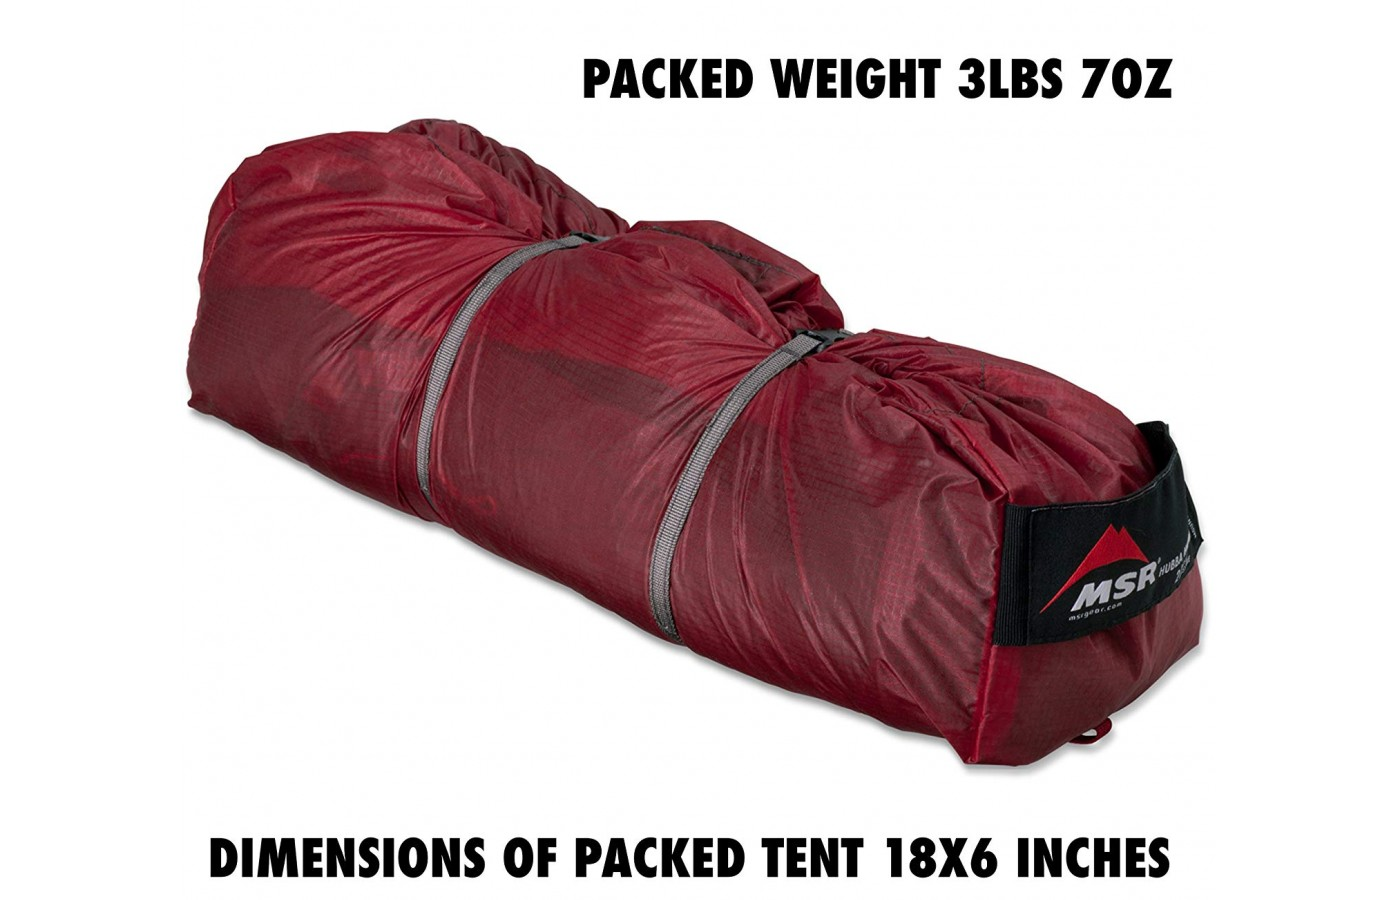 It is easy to transport this tent from place to place.